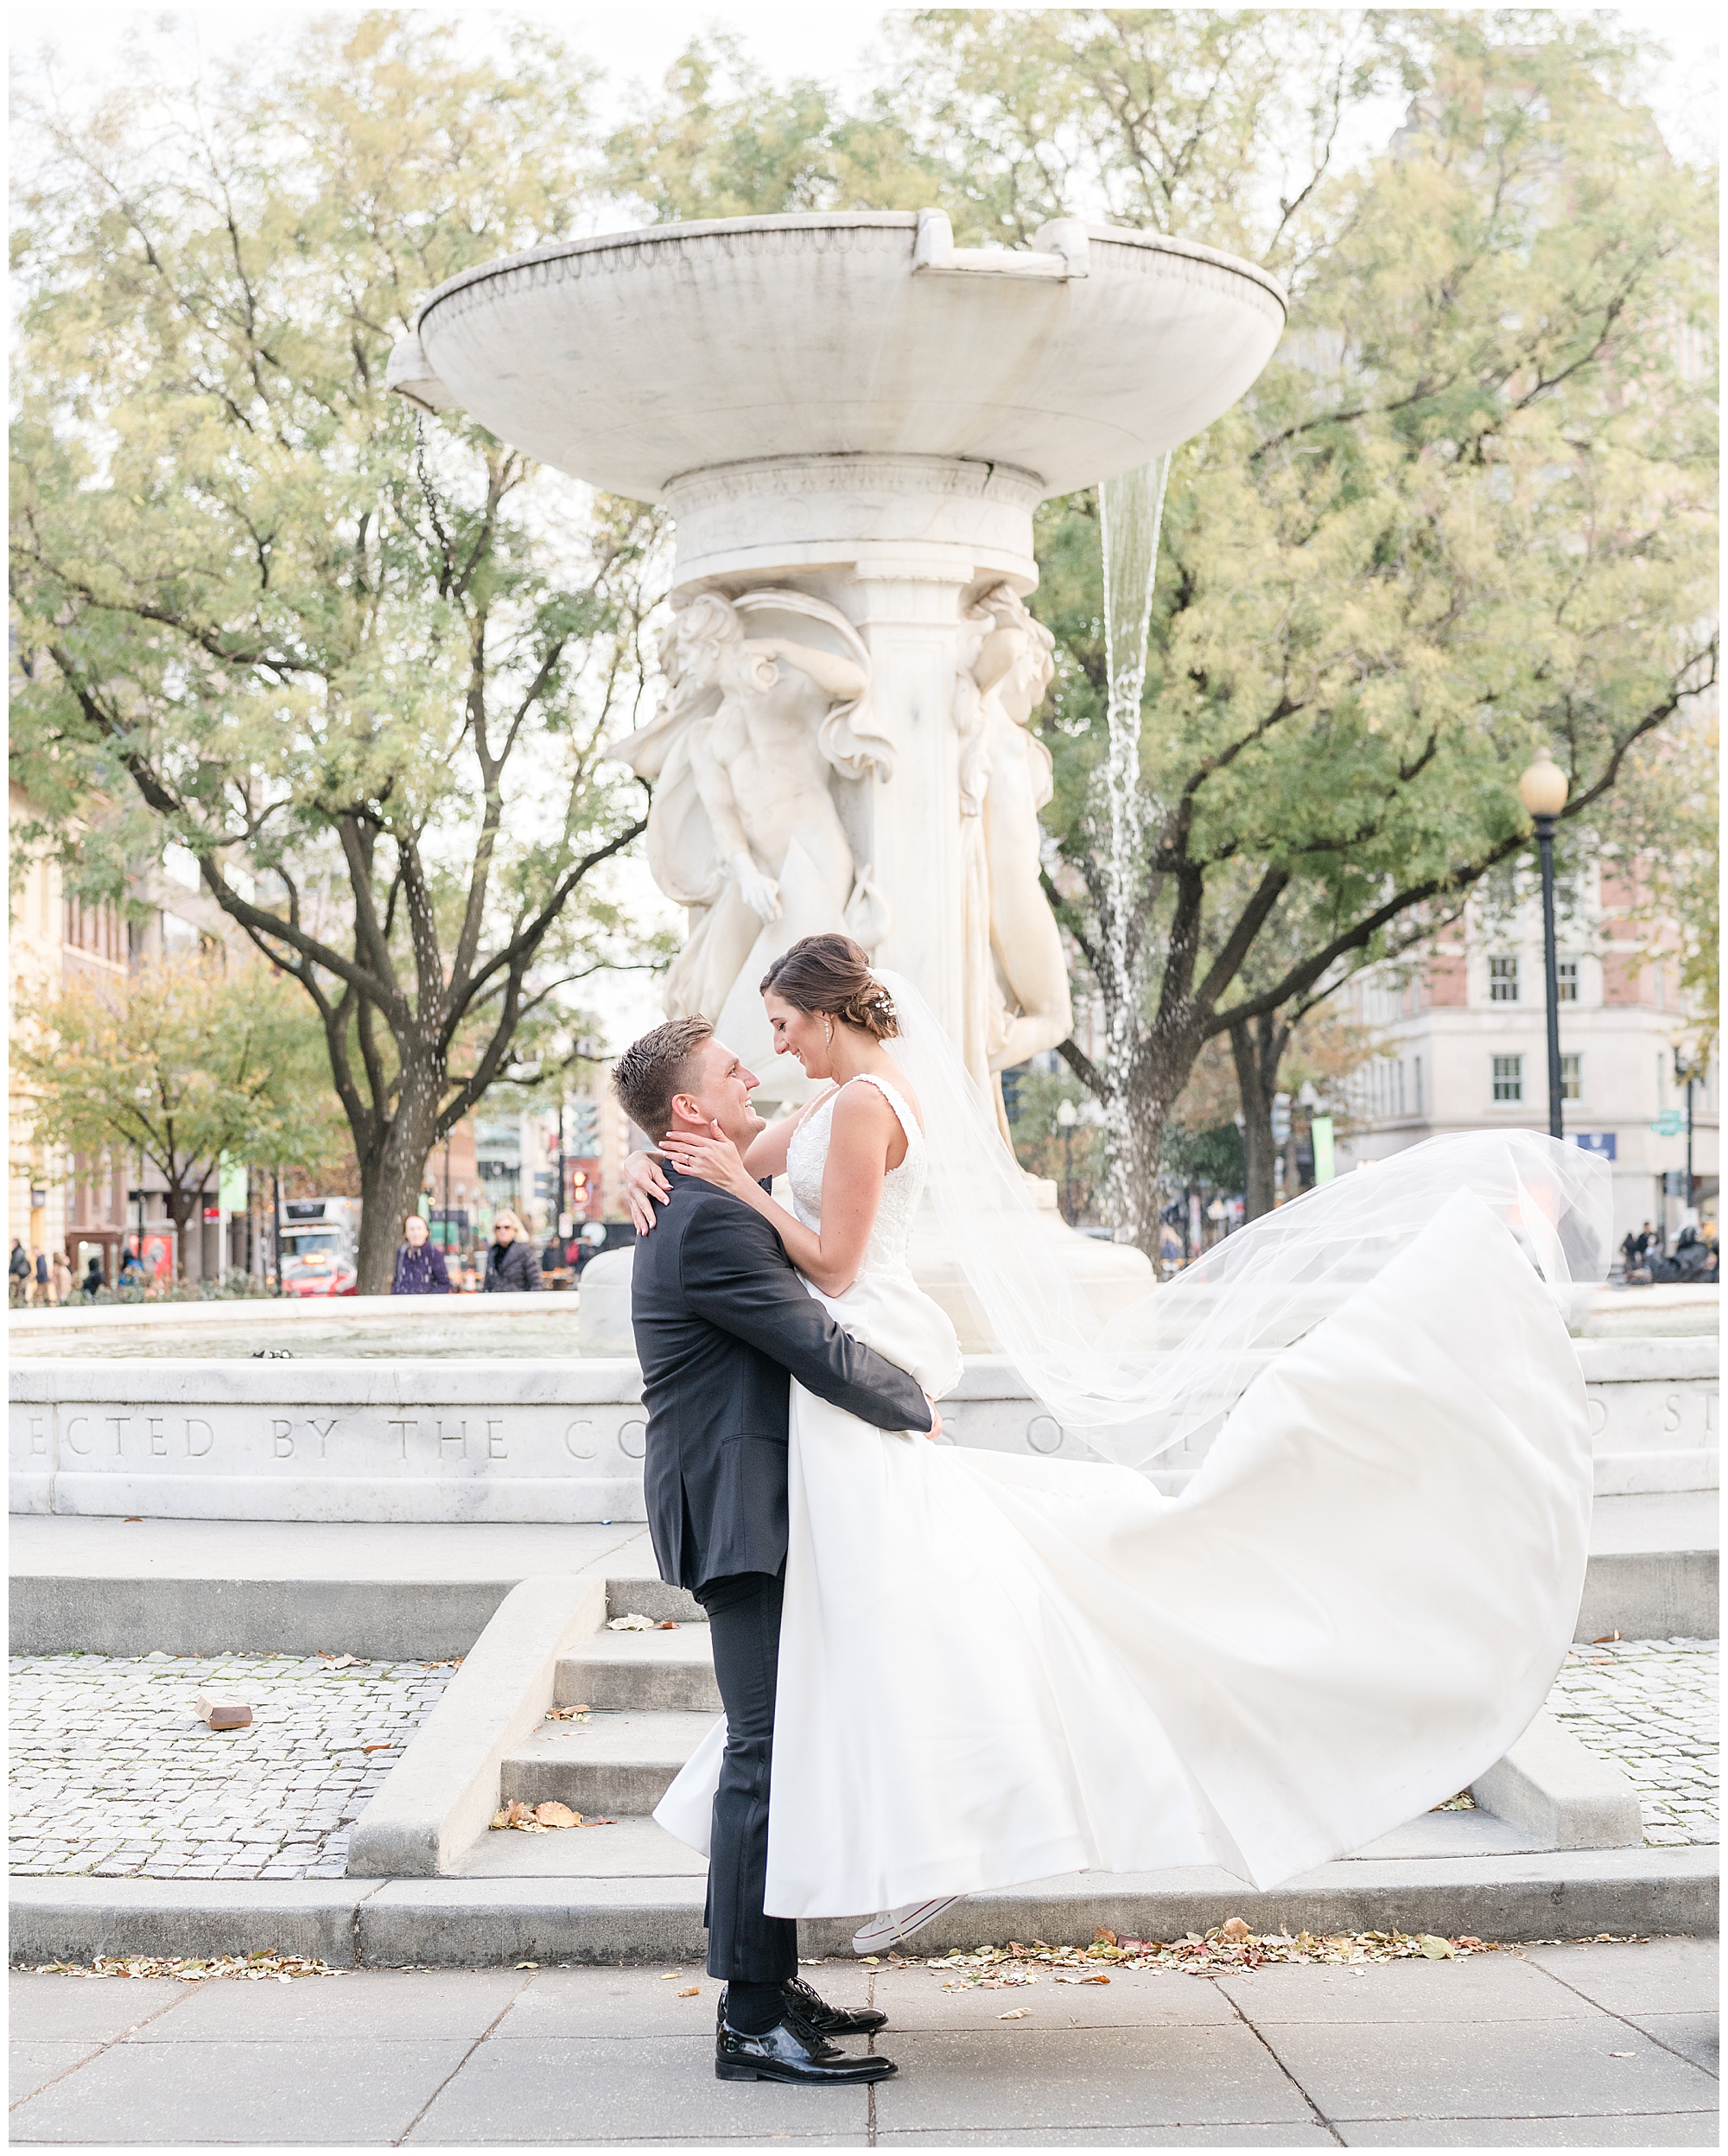 A groom lifts his bride in DuPont Circle during their Washington DC wedding